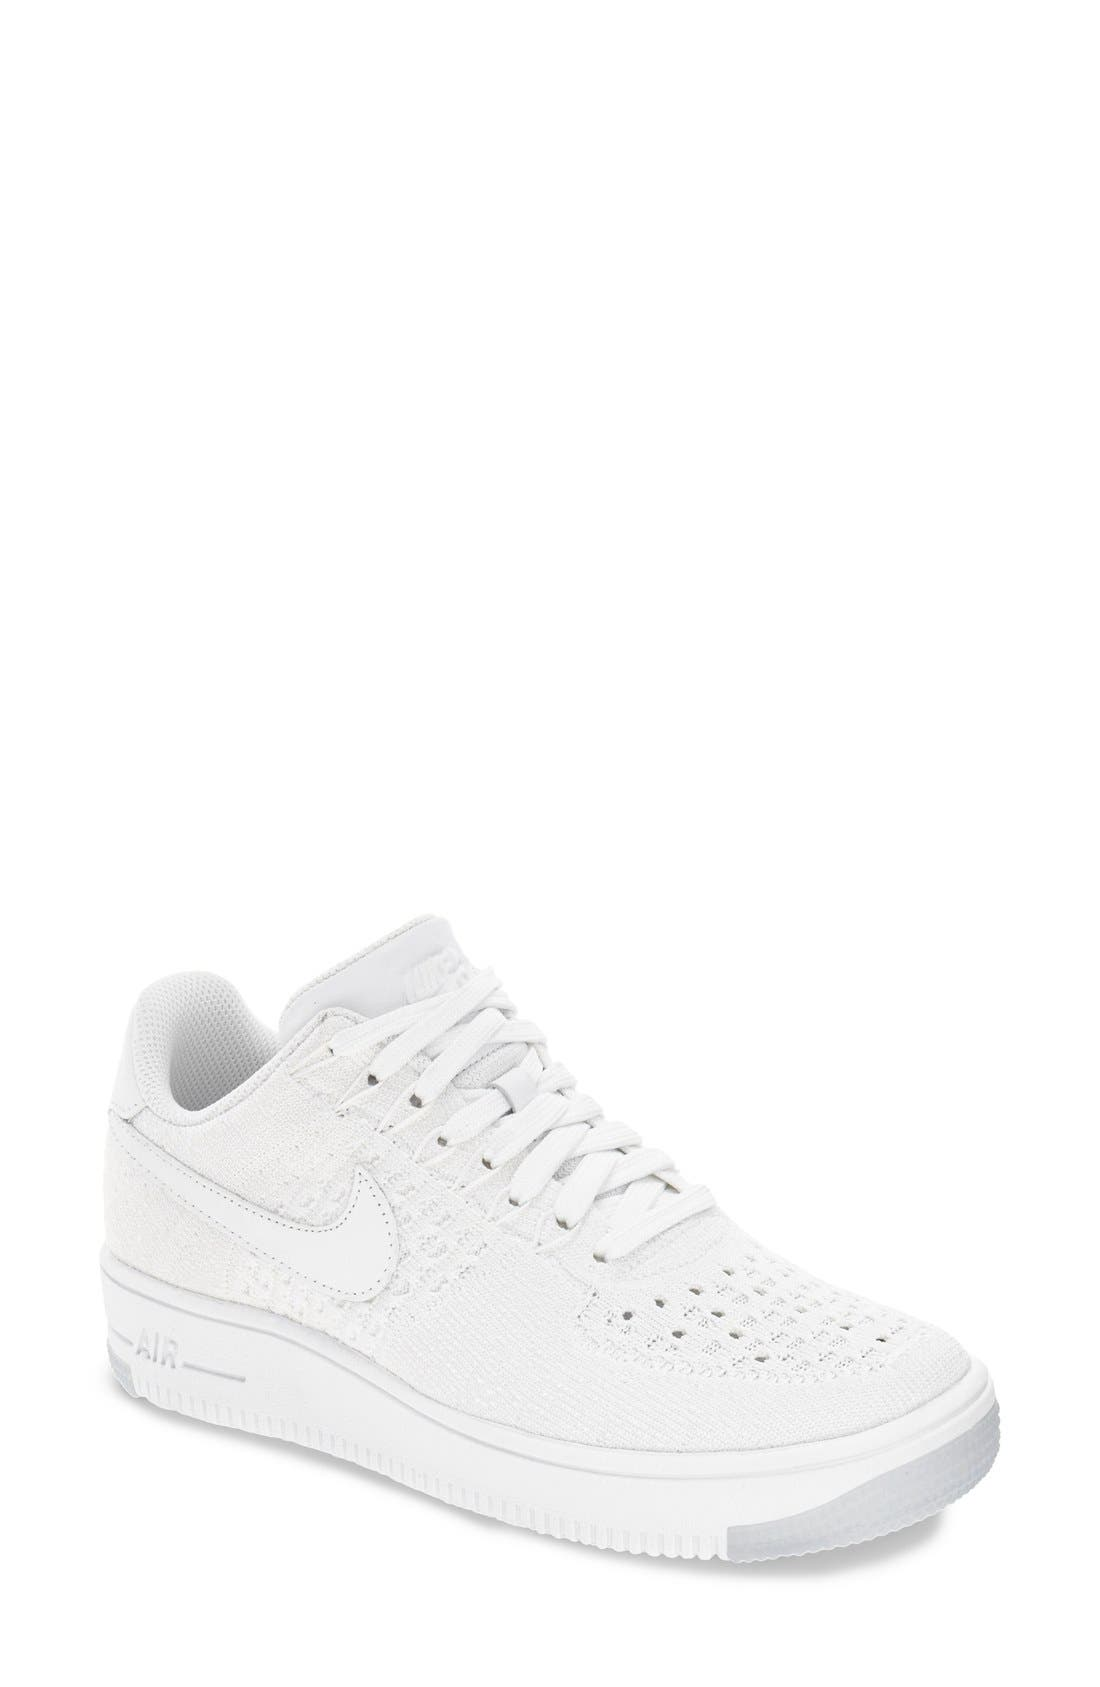 'Air Force 1 Flyknit Low' Sneaker,                             Main thumbnail 4, color,